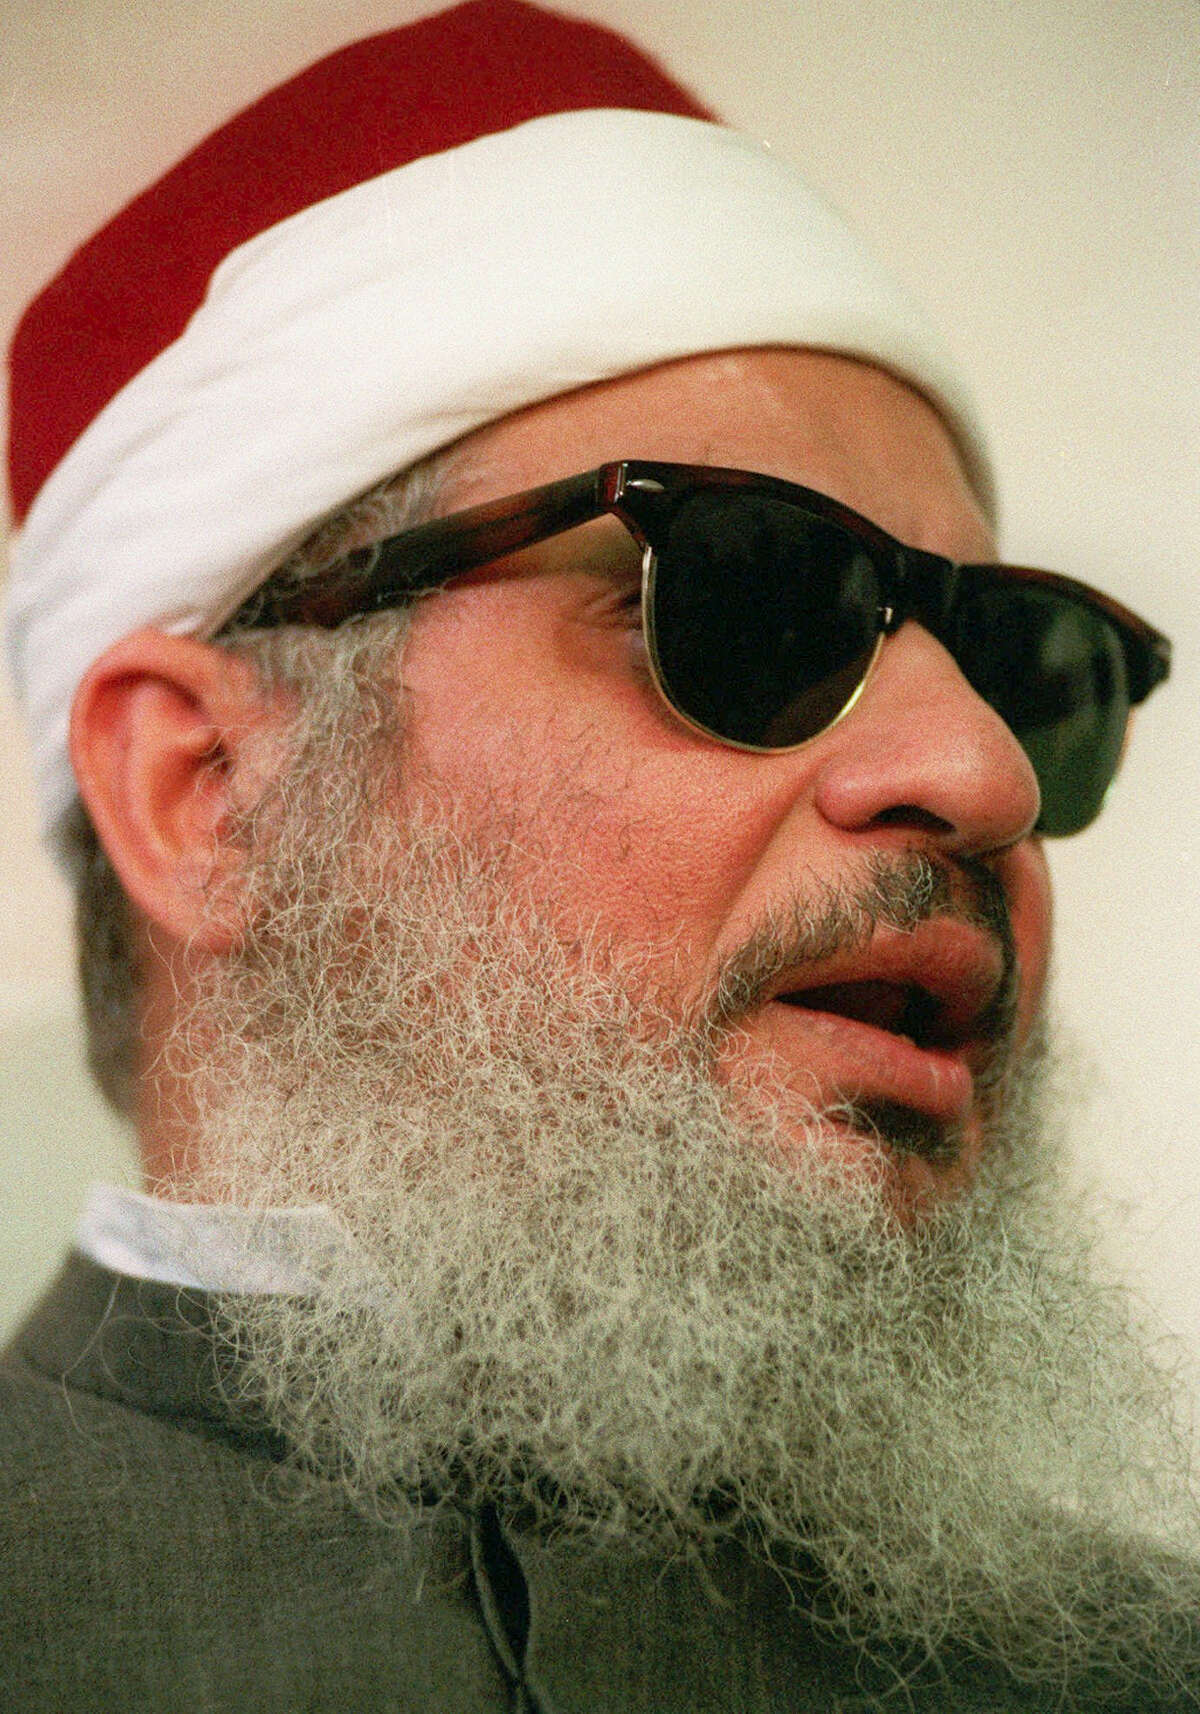 This April 6, 1993, file photo shows Sheik Omar Abdel-Rahman in New York. Kenneth McKoy of the Federal Correction Complex in Butner, N.C., said Abdel-Rahman died Saturday, Feb. 18, 2017, after a long battle with diabetes and coronary artery disease. Abdel-Rahman was sentenced to life in prison after his 1995 conviction for his advisory role in a plot to blow up landmarks, including the United Nations, and several bridges and tunnels.